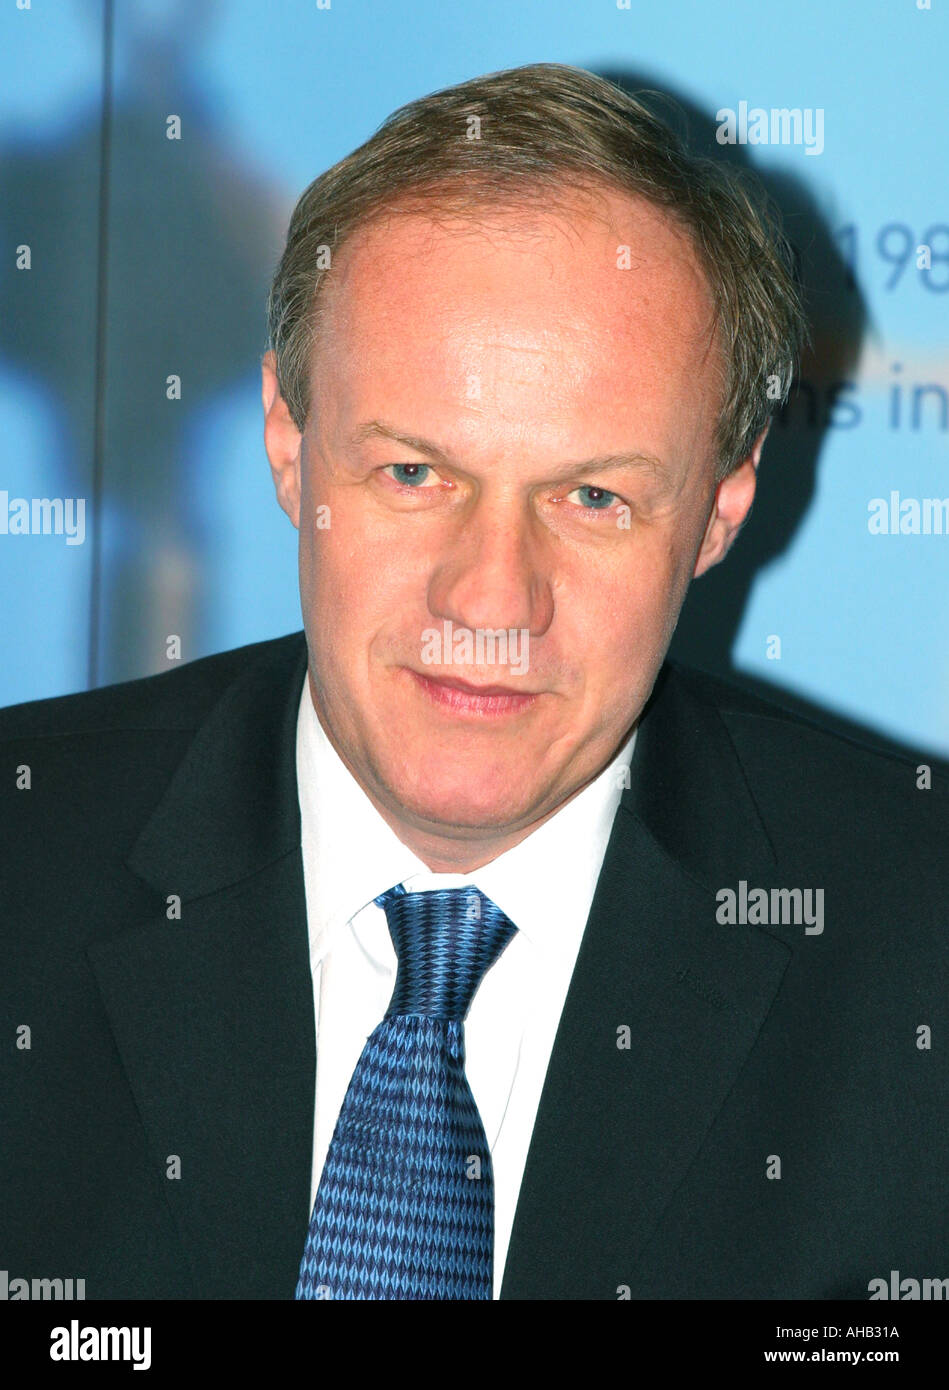 Damian Green Tory MP for Ashford Shadow Secretary for Transport Portrait Tory Conference Blackpool 2003 - Stock Image